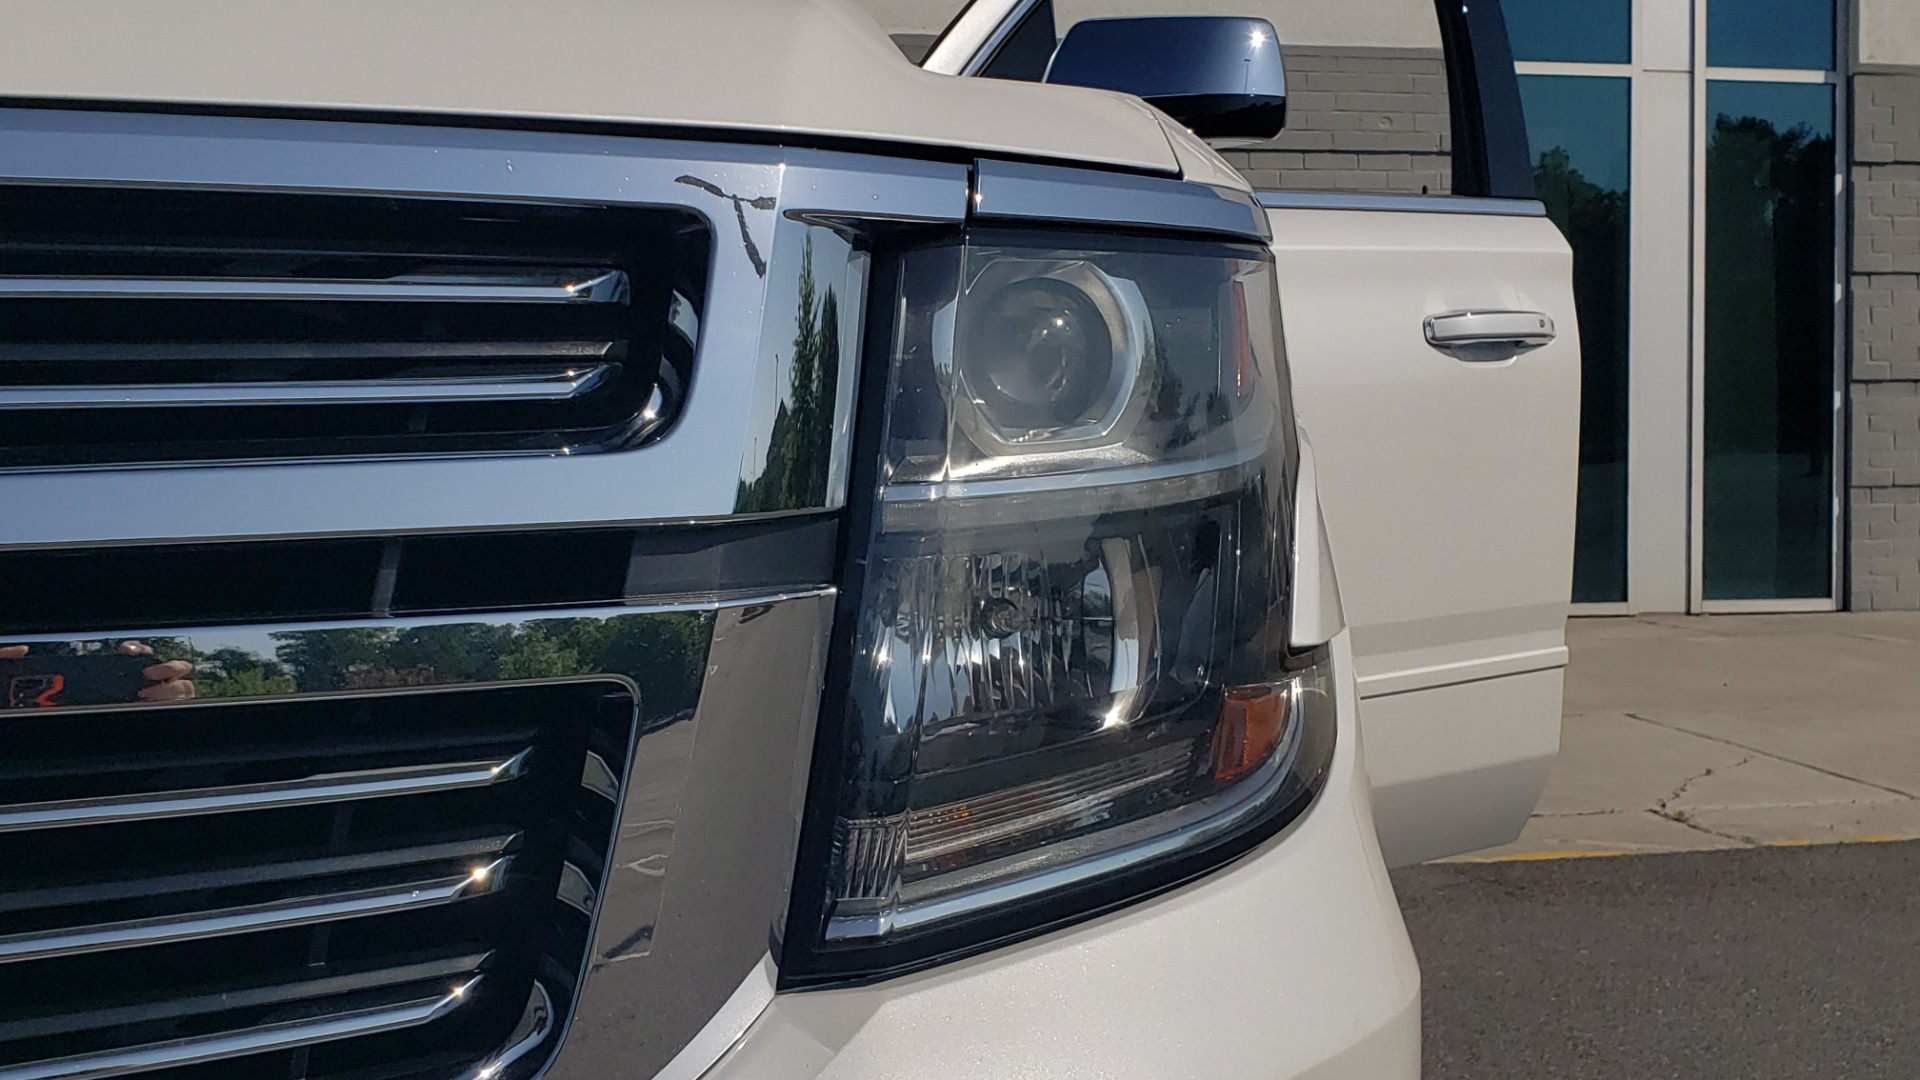 Used 2018 Chevrolet TAHOE PREMIER 4X4 / NAV / BOSE / SUNROOF / ENT SYS / 3-ROW / REARVIEW for sale $55,995 at Formula Imports in Charlotte NC 28227 29